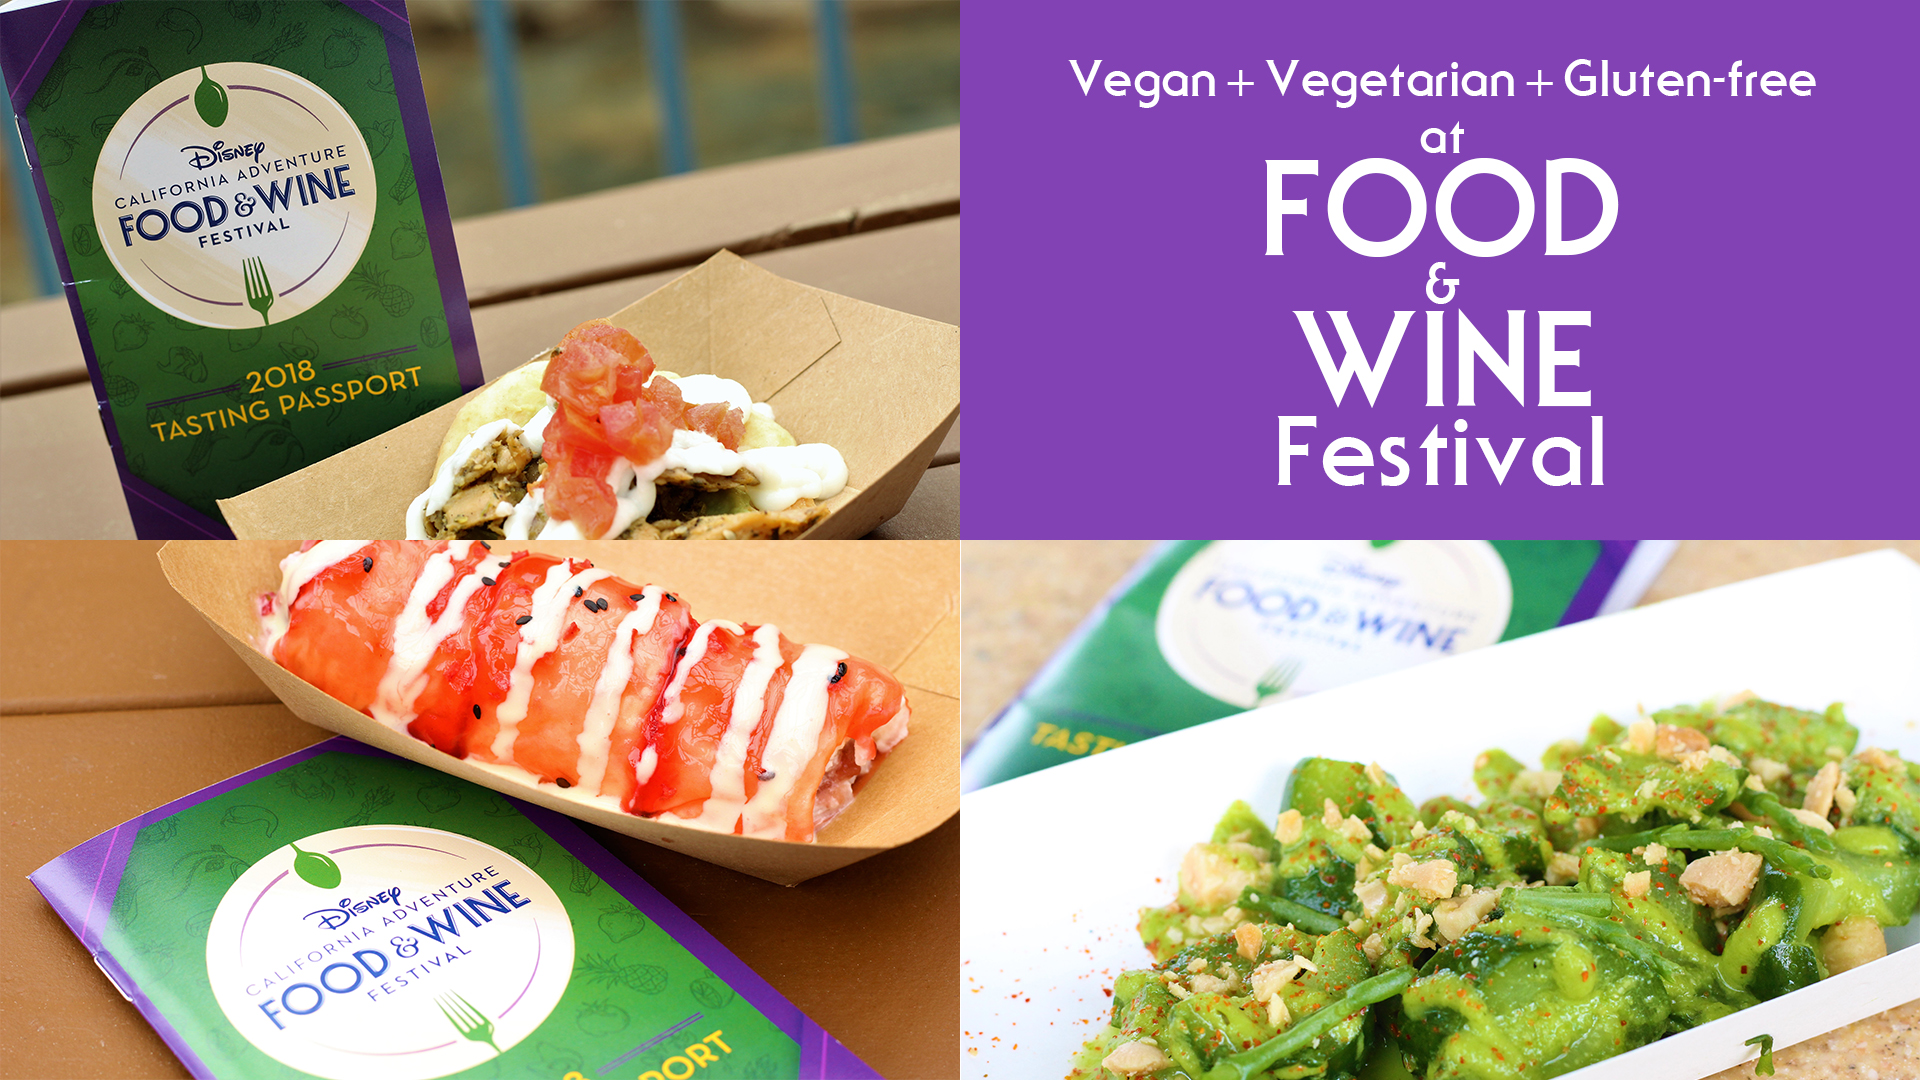 Vegan + Vegetarian + Gluten-Free at Disneyland Resort Food & Wine Festival 2018